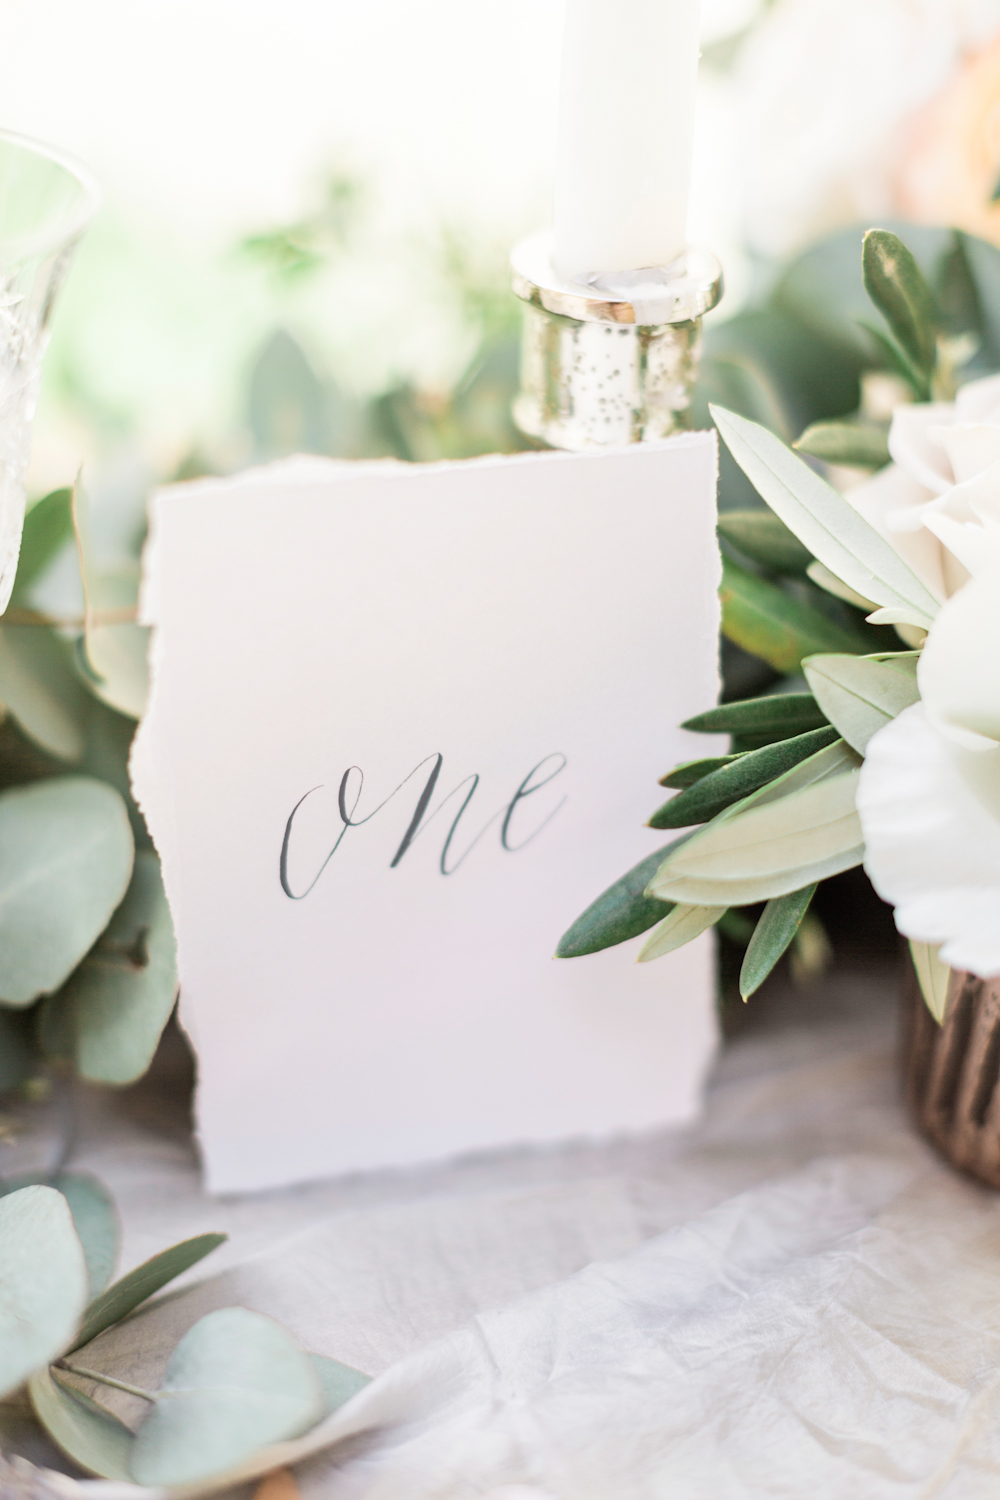 brahmin_calligraphy_wedding_table_name.jpg